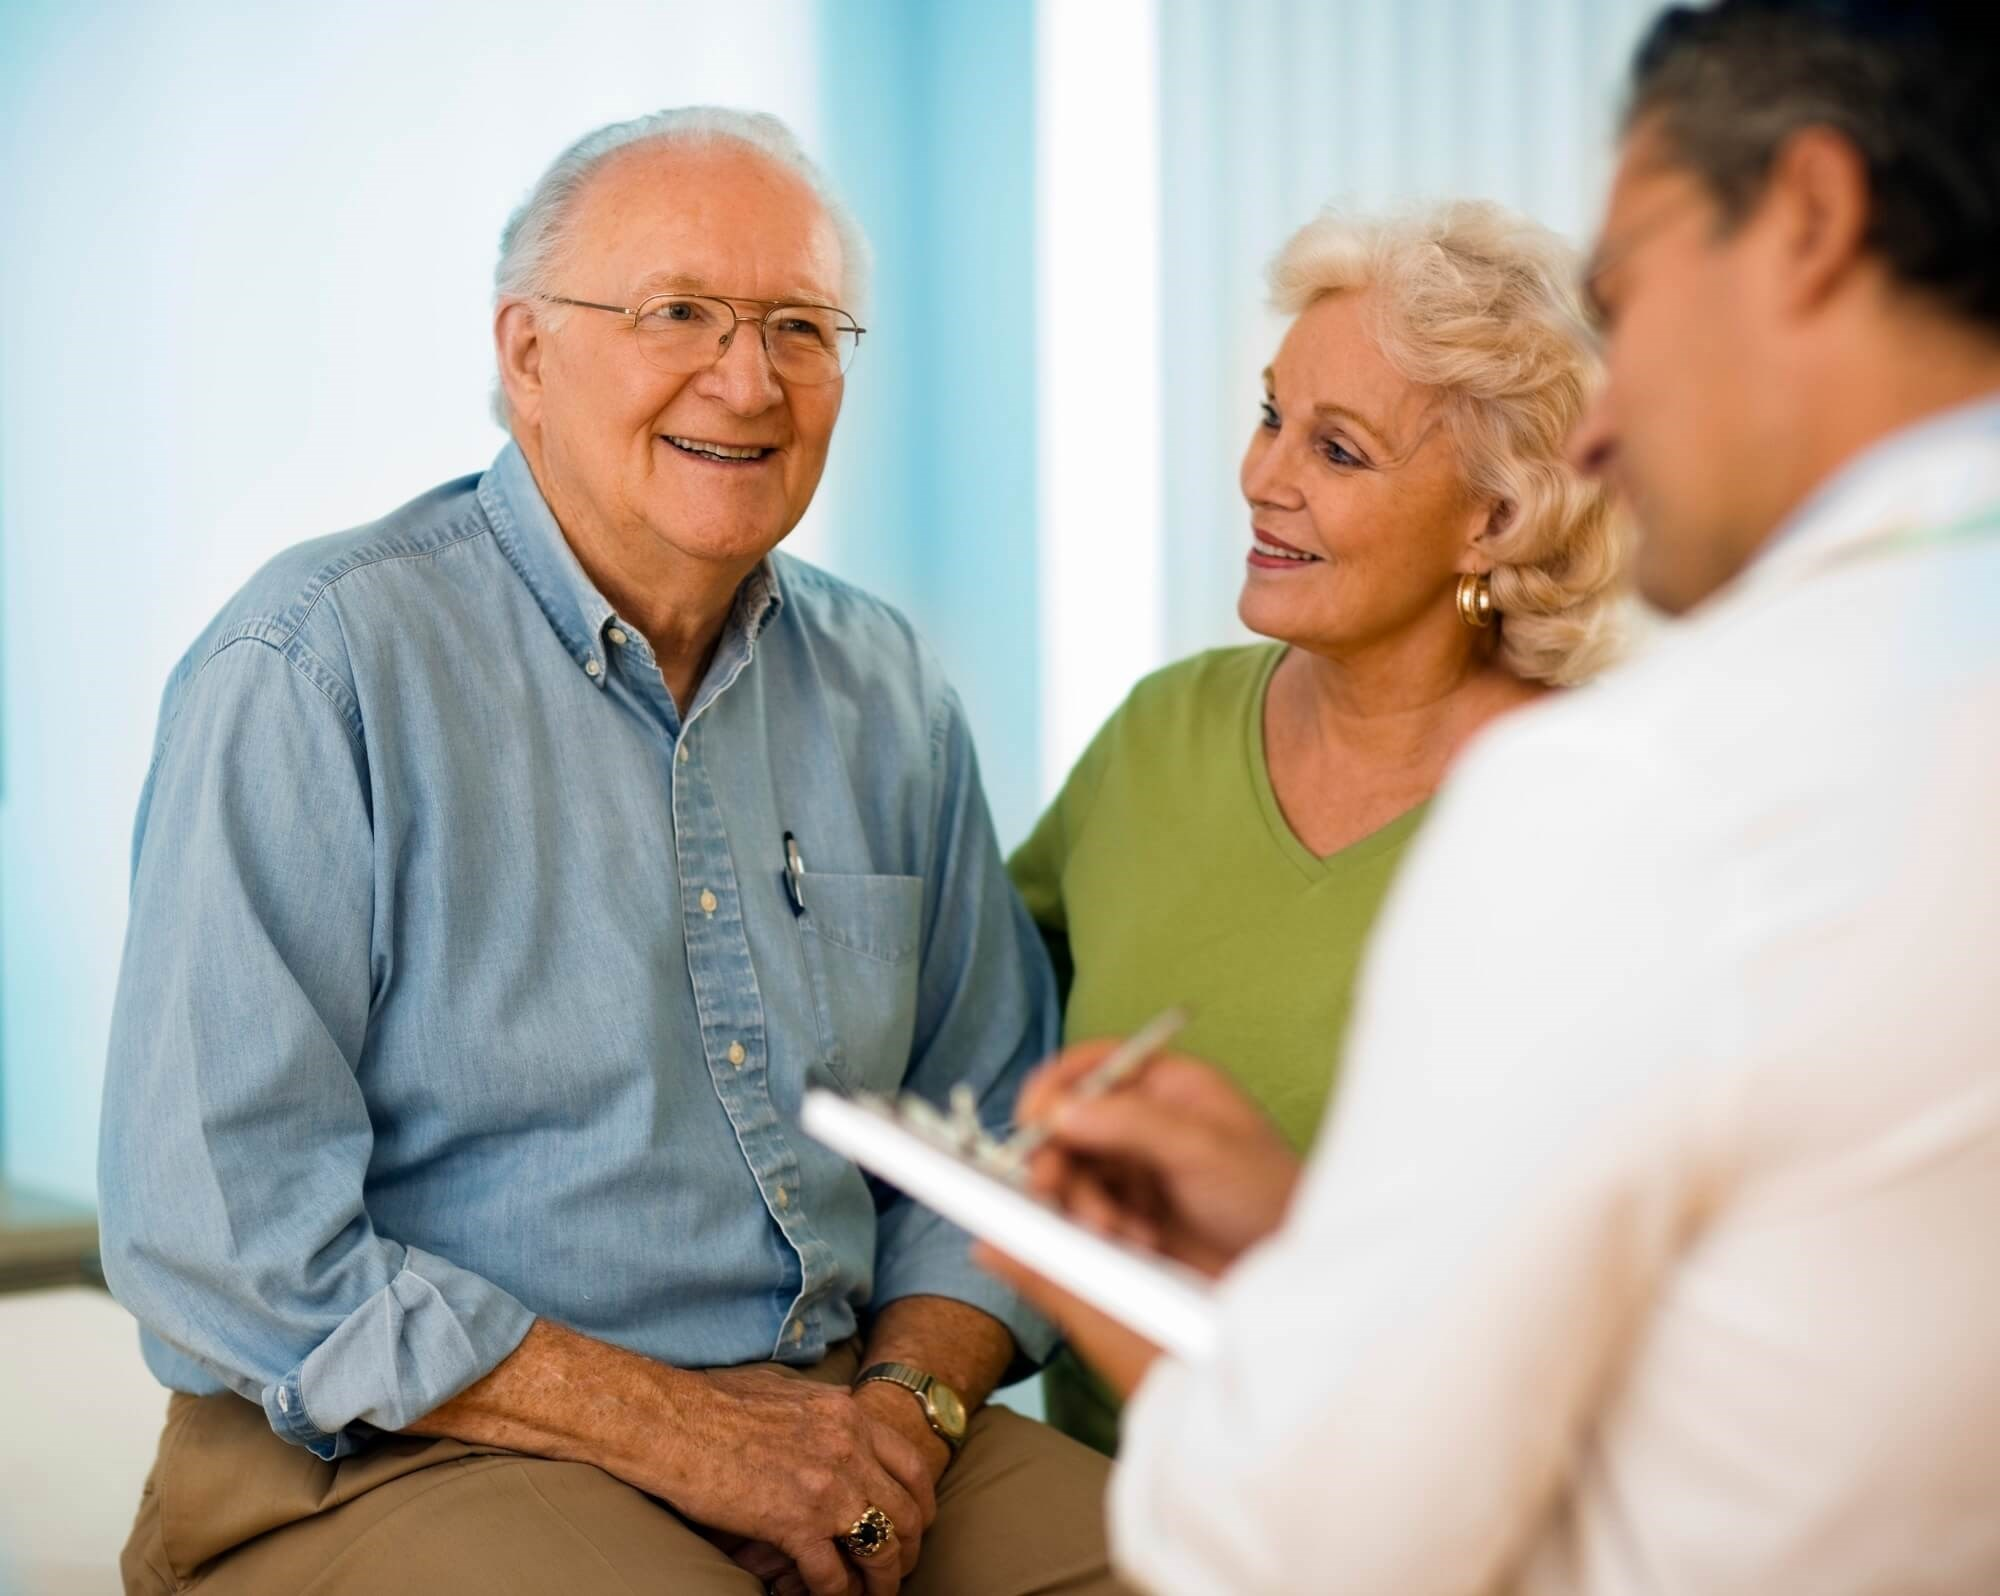 Voice treatment, focusing on respiratory-laryngeal subsystem therapy, improved speech disorder symptoms in patients with Parkinson disease.